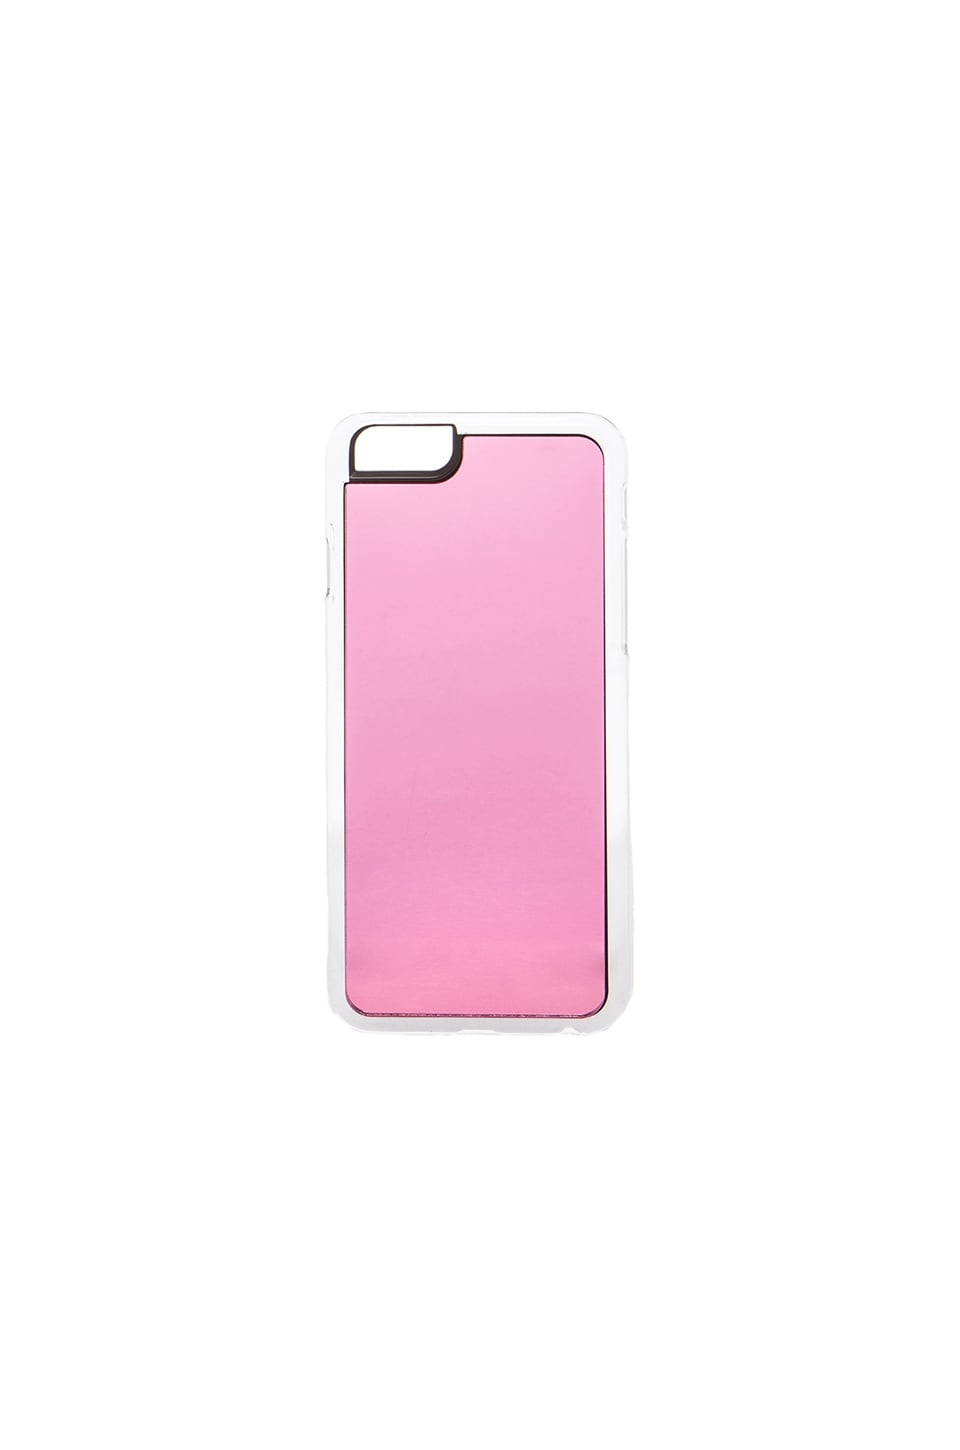 ZERO GRAVITY Mirror IPhone 6 Case in Pink